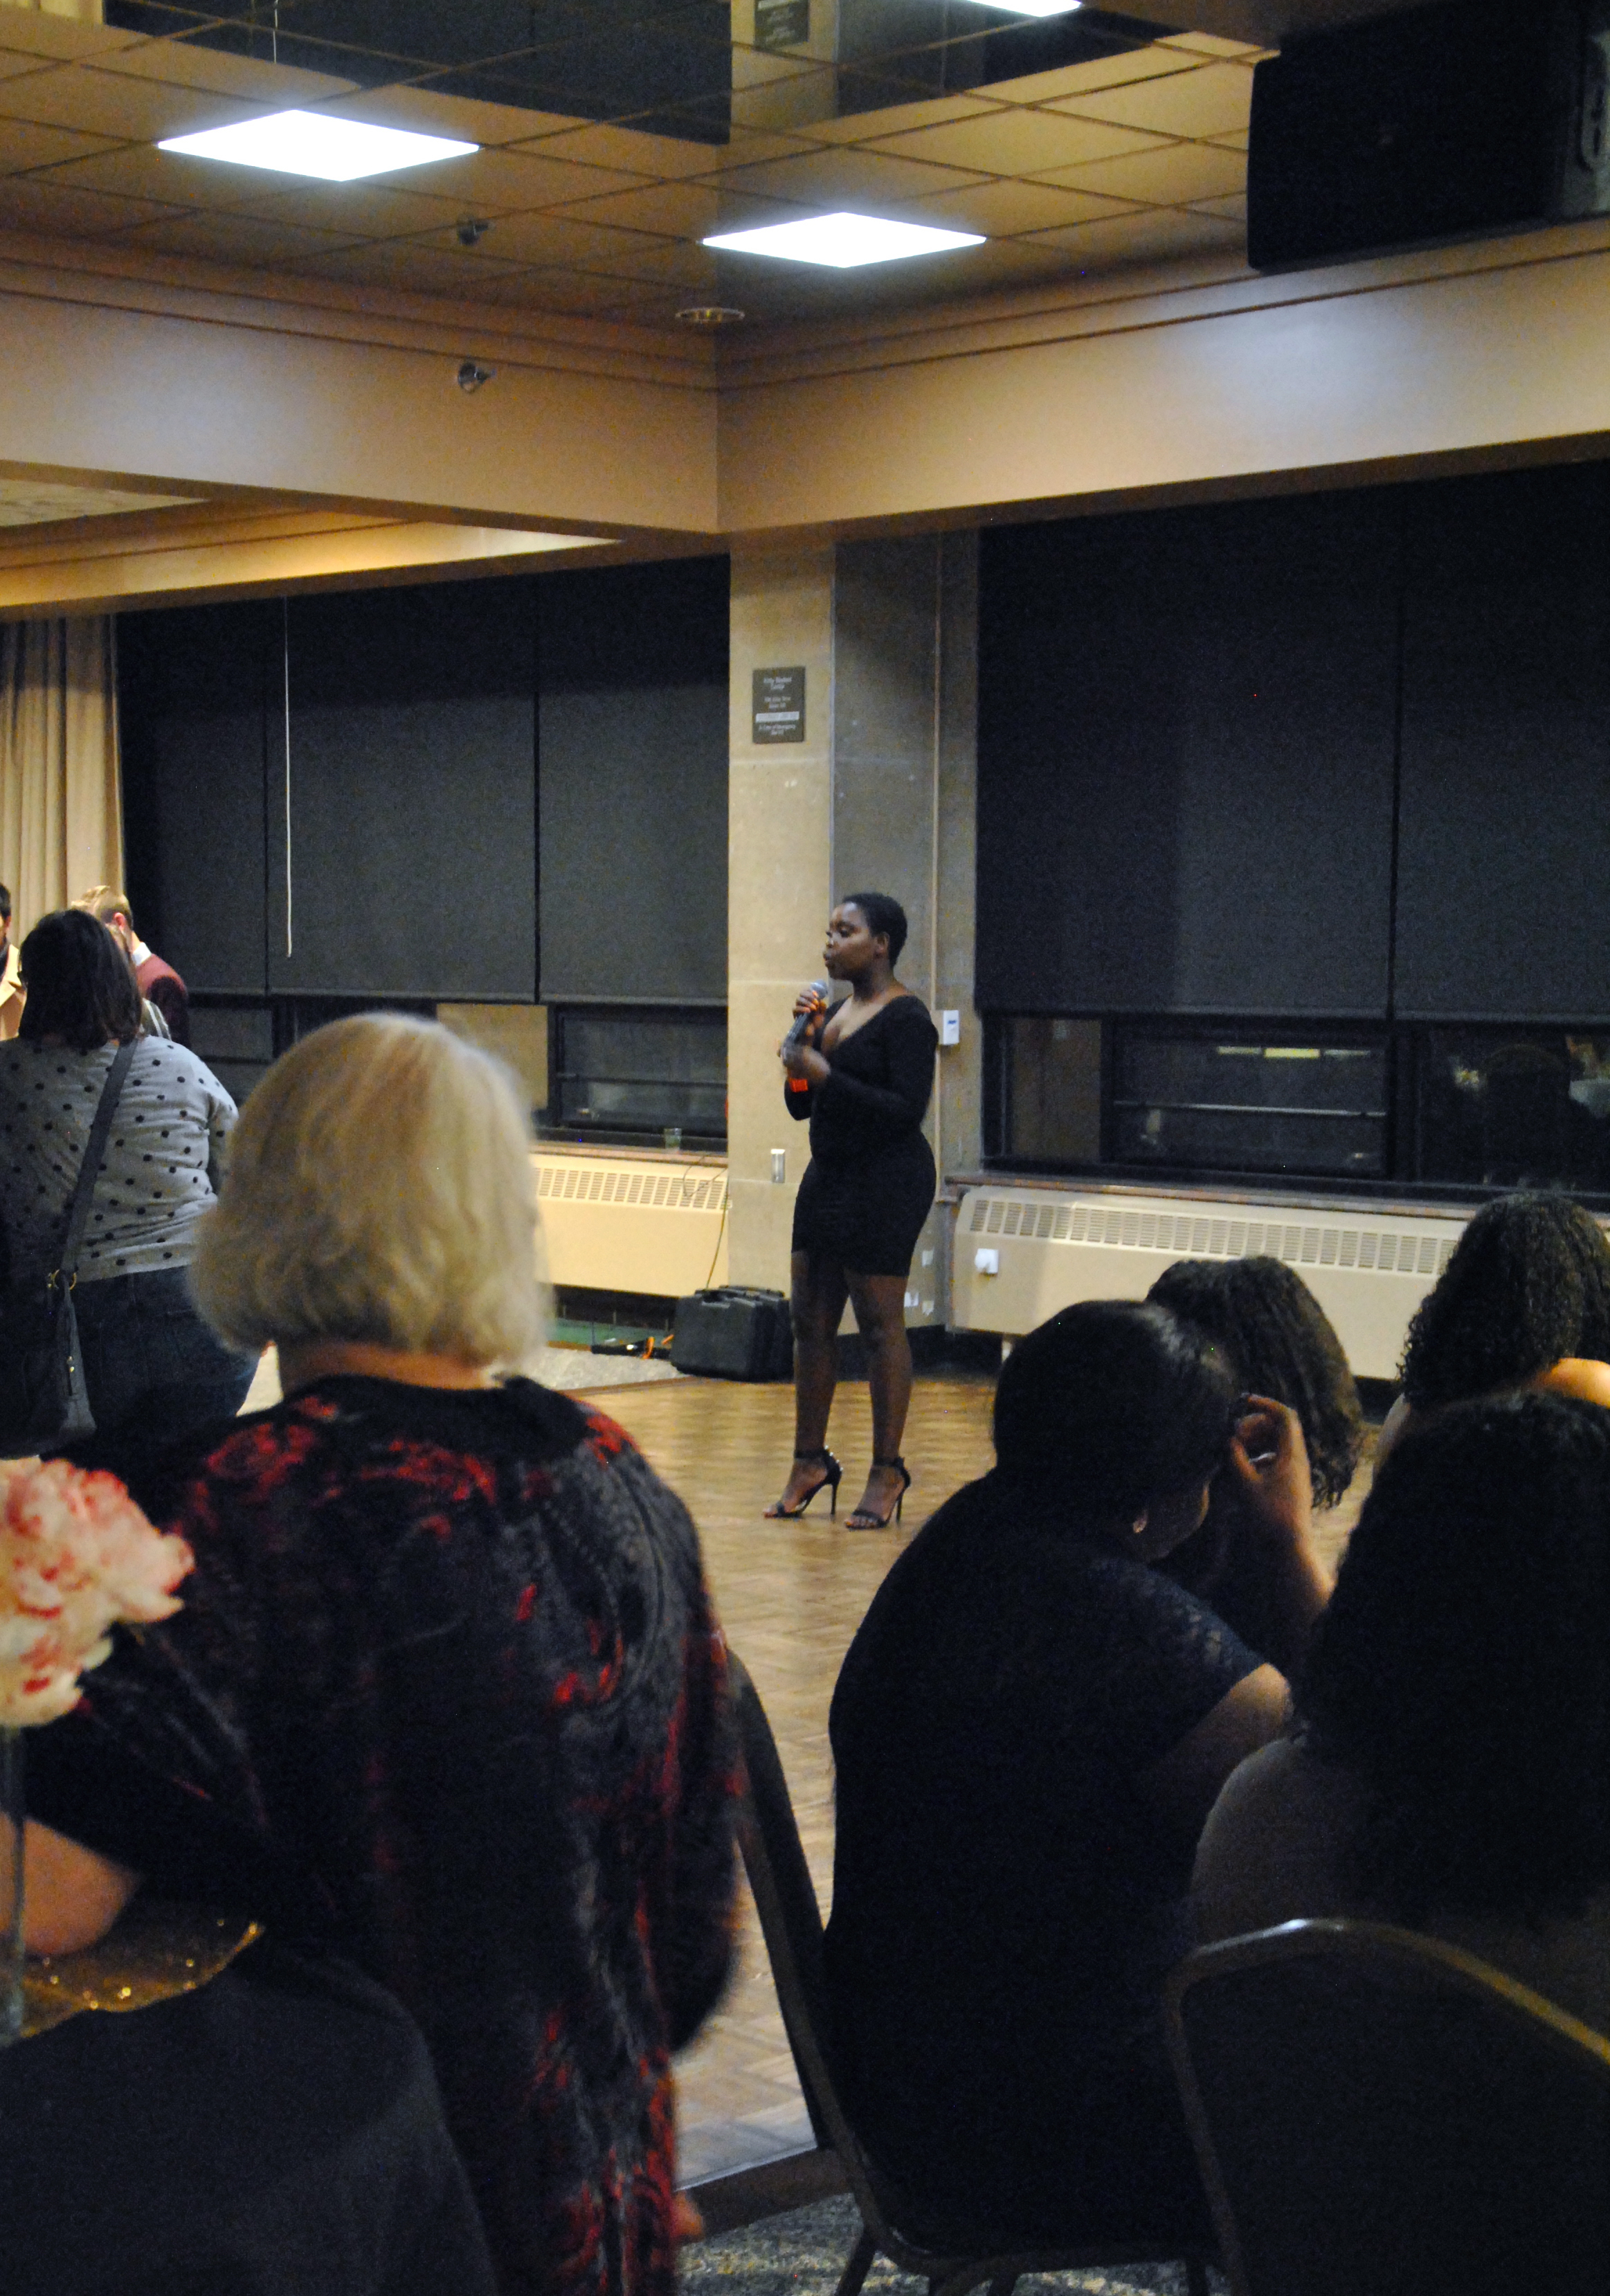 Doreen Nyamwaya, a BSA member, announcing the beginning of Murder Mystery on Nov. 2, 2018, in Kirby Ballroom. Nyamwaya remained one of the main announcers to help guide the game throughout the evening. Photo by Rebecca Kottke